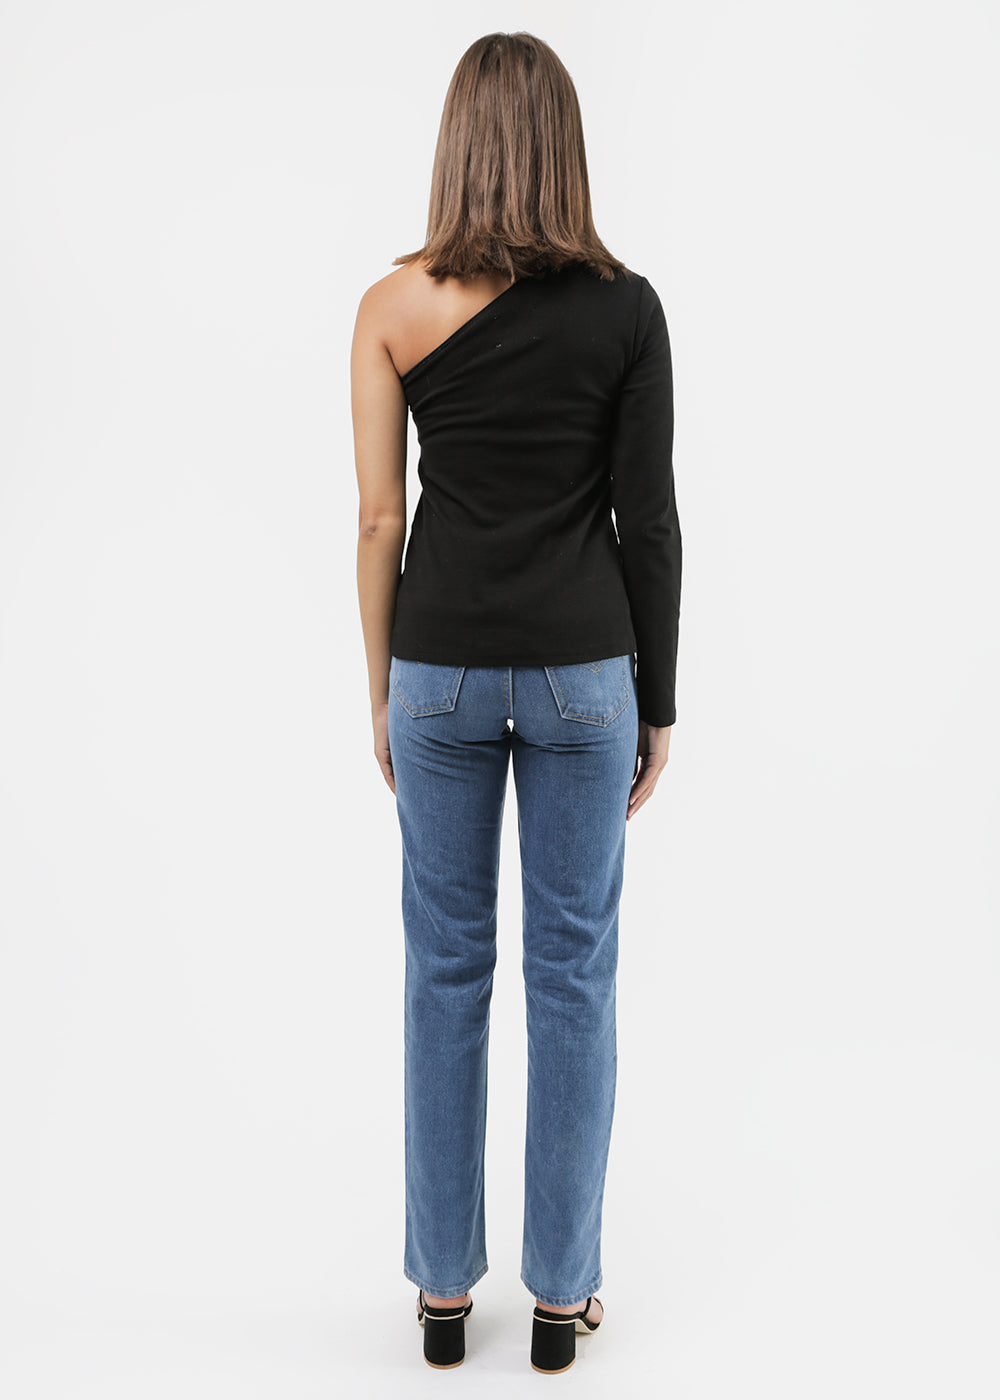 Kowtow Playback Top — Shop sustainable fashion and slow fashion at New Classics Studios